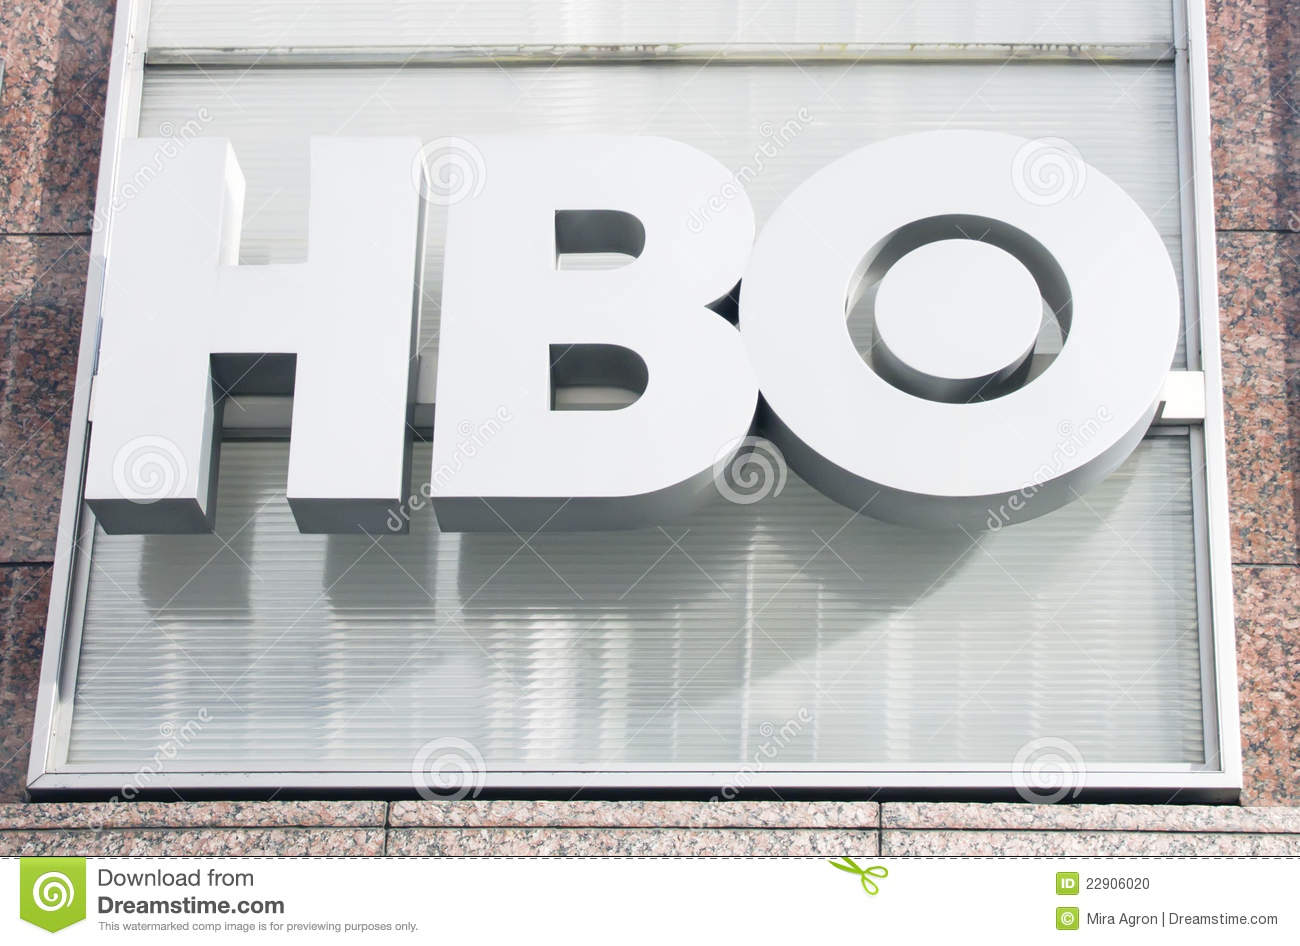 Home Office H&m Hbo Logo Editorial Image Image Of Network Home Office 22906020